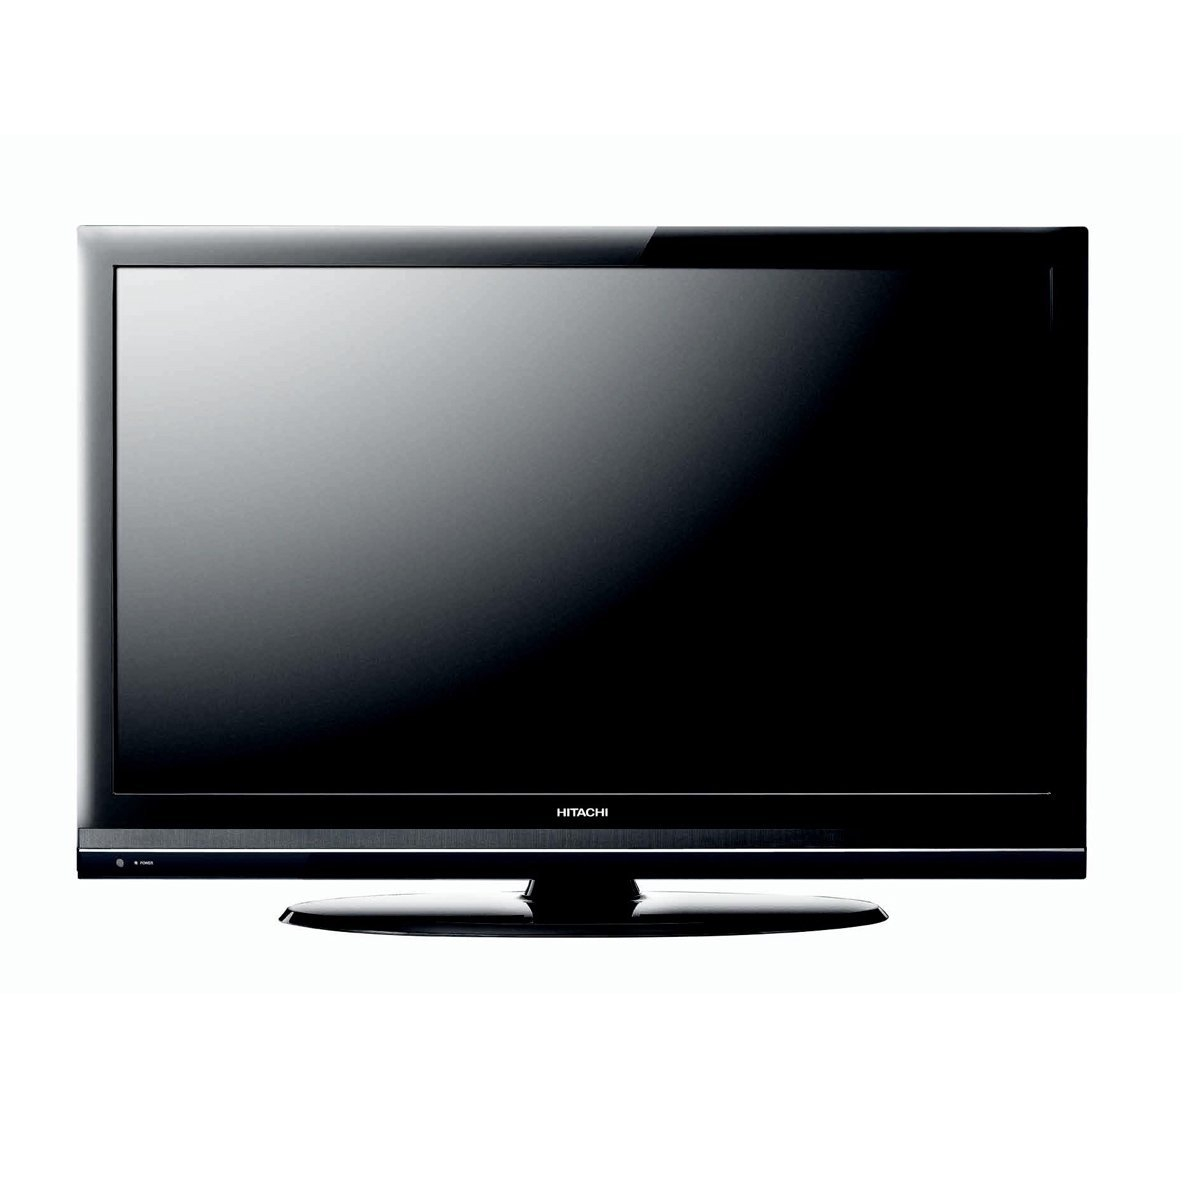 "Hitachi UltraVision 42"" 1080p LCD TV - 16:9 - HDTV 1080p ..."